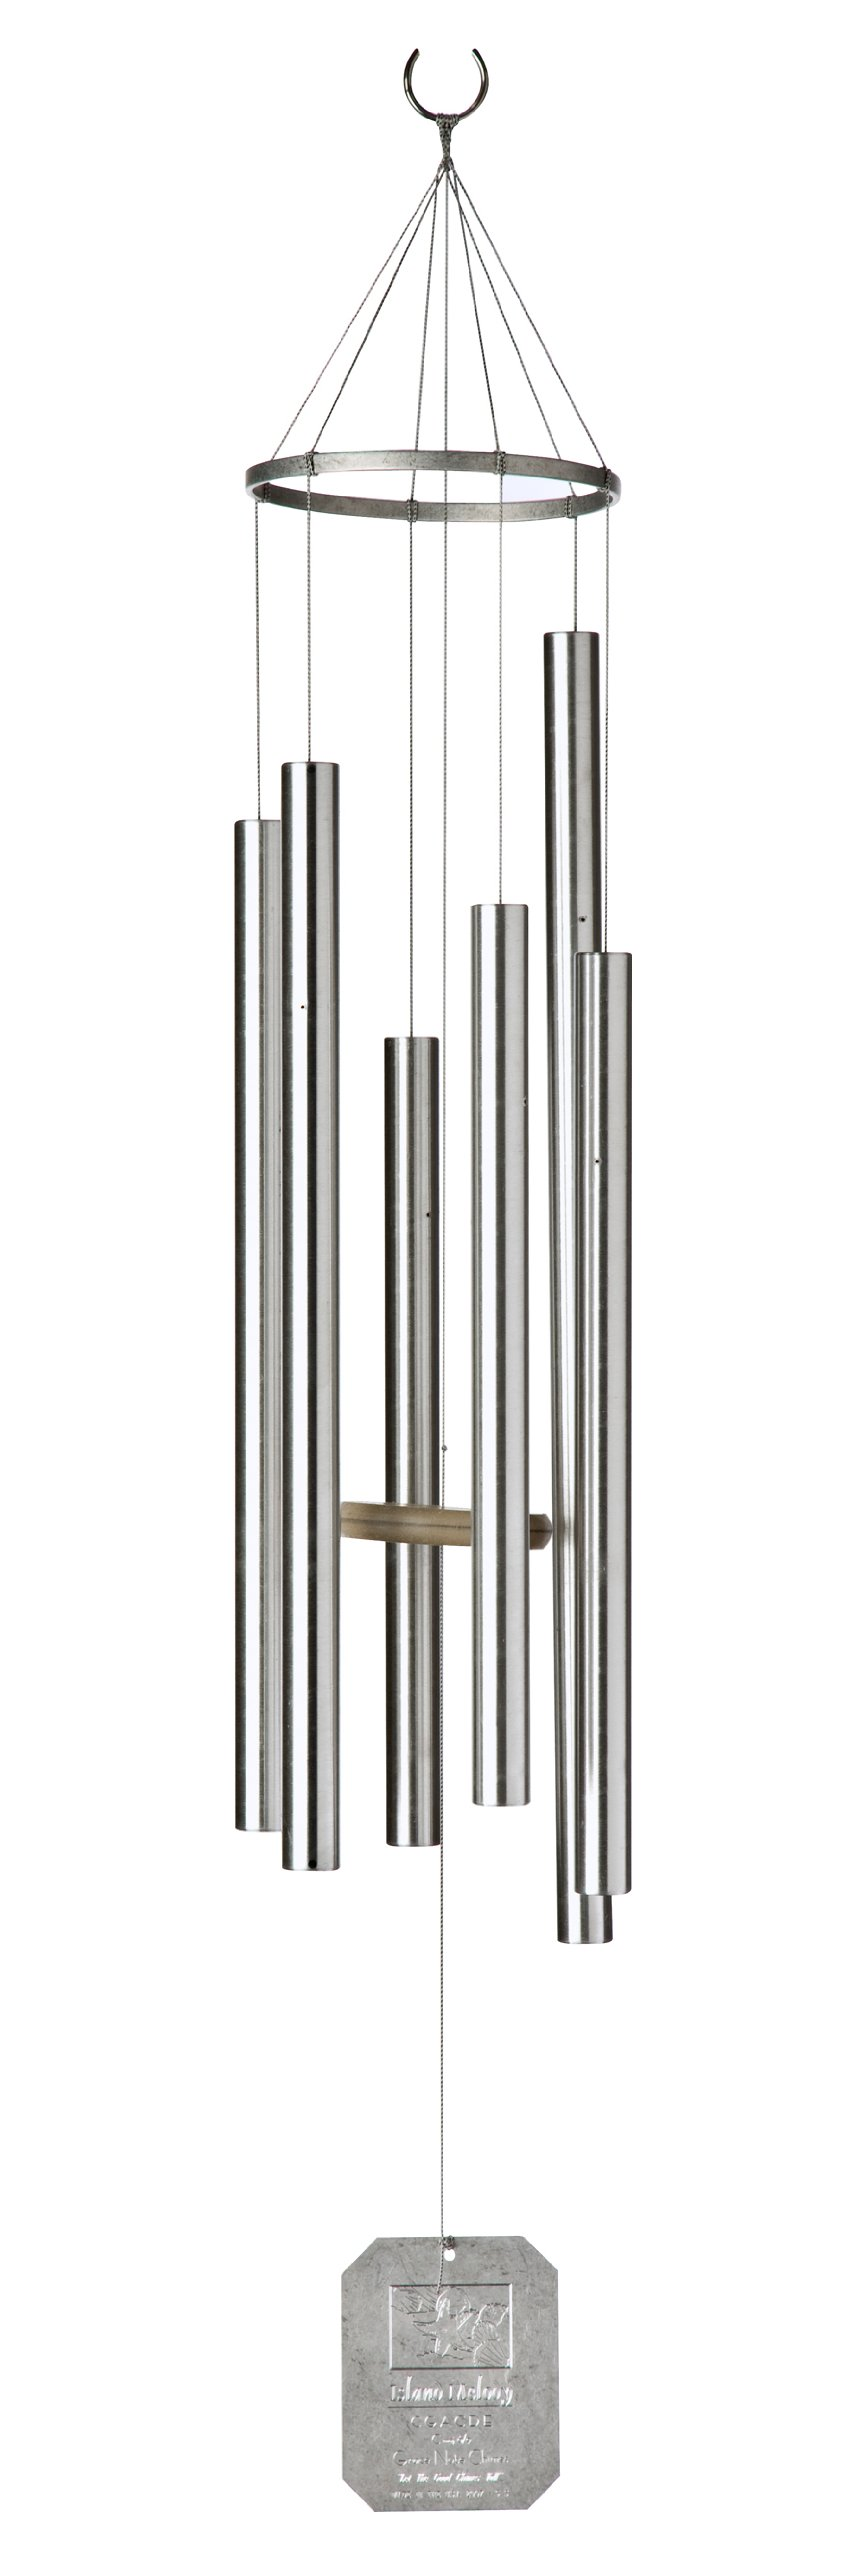 Grace Note Chimes 3S 36-Inch Himalayan Echo Wind Chimes, Small, Silver